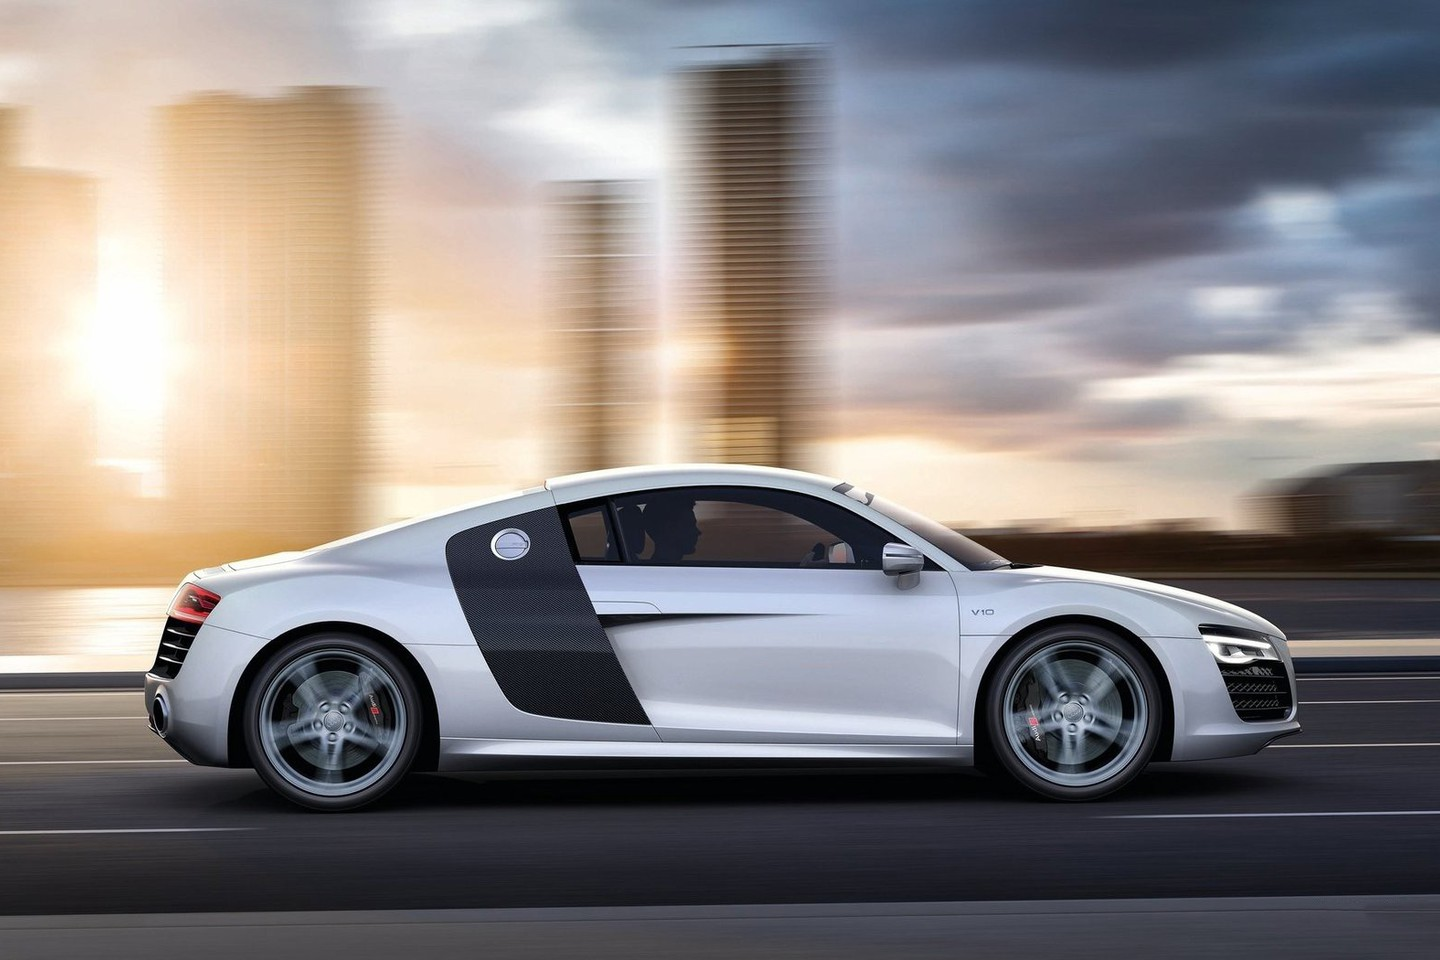 Cars Audi Roads R8 White V10 Wallpaper Allwallpaper In